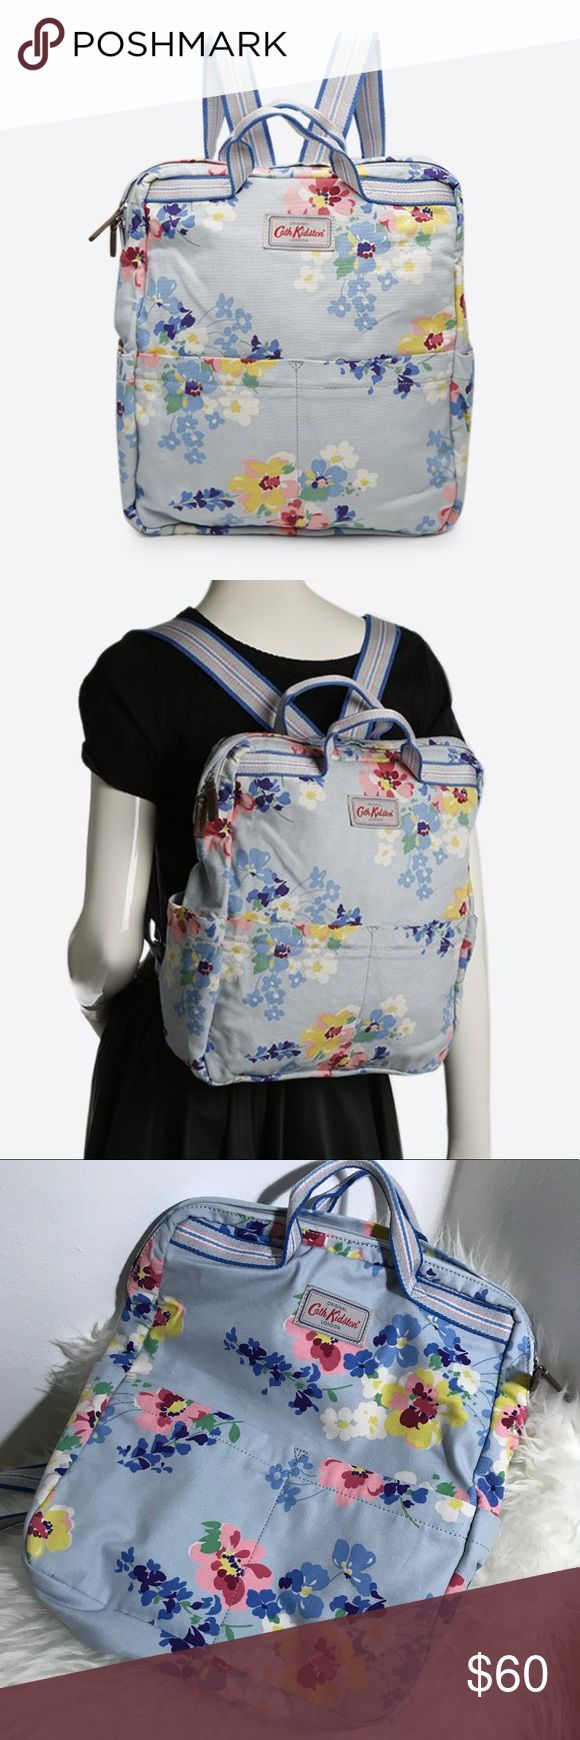 cath kidston • painted posy blue cotton backpack condition: new without tags. Retail: $65   * purchased in London at Harrod's! * Cath Kidston cotton backpack * Painted posy print in cool blue * Grab handles, side pockets, two zipped front pockets, one internal zipped pocket, two internal slip pockets * Zip fastening, adjustable shoulder straps * Dimensions: 35 x 30 x 12 cm    NO TRADES  trusted seller for years • ships quickly great feedback • REASONABLE offers welcome Cath Kidston Bags…